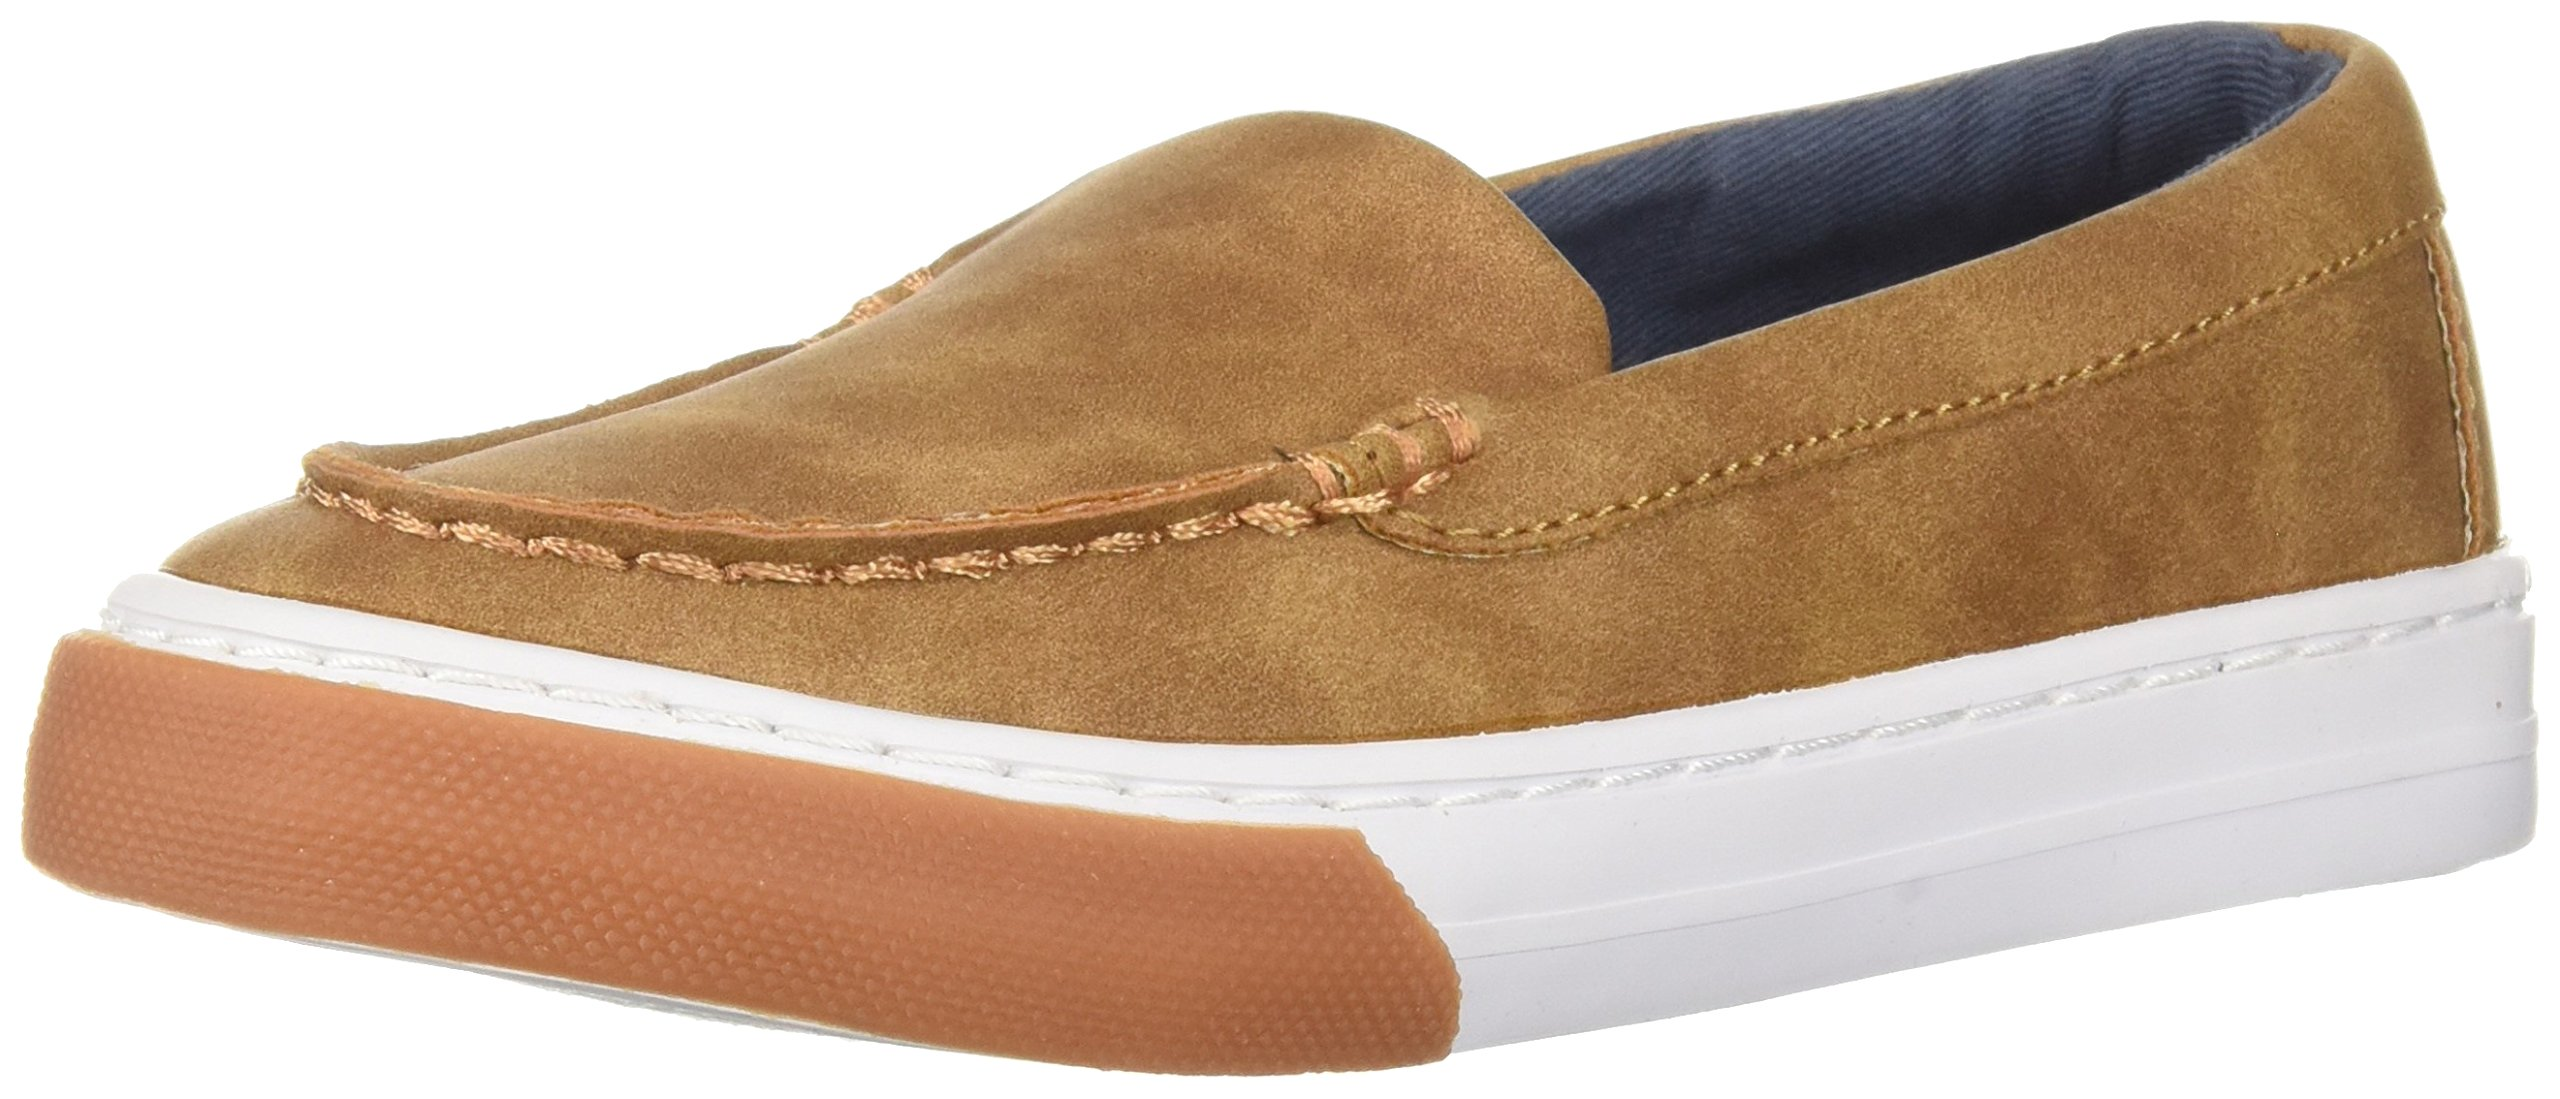 The Children's Place Kids' Sneaker,TAN-BB Indie,12 M US Little Kid by The Children's Place (Image #1)